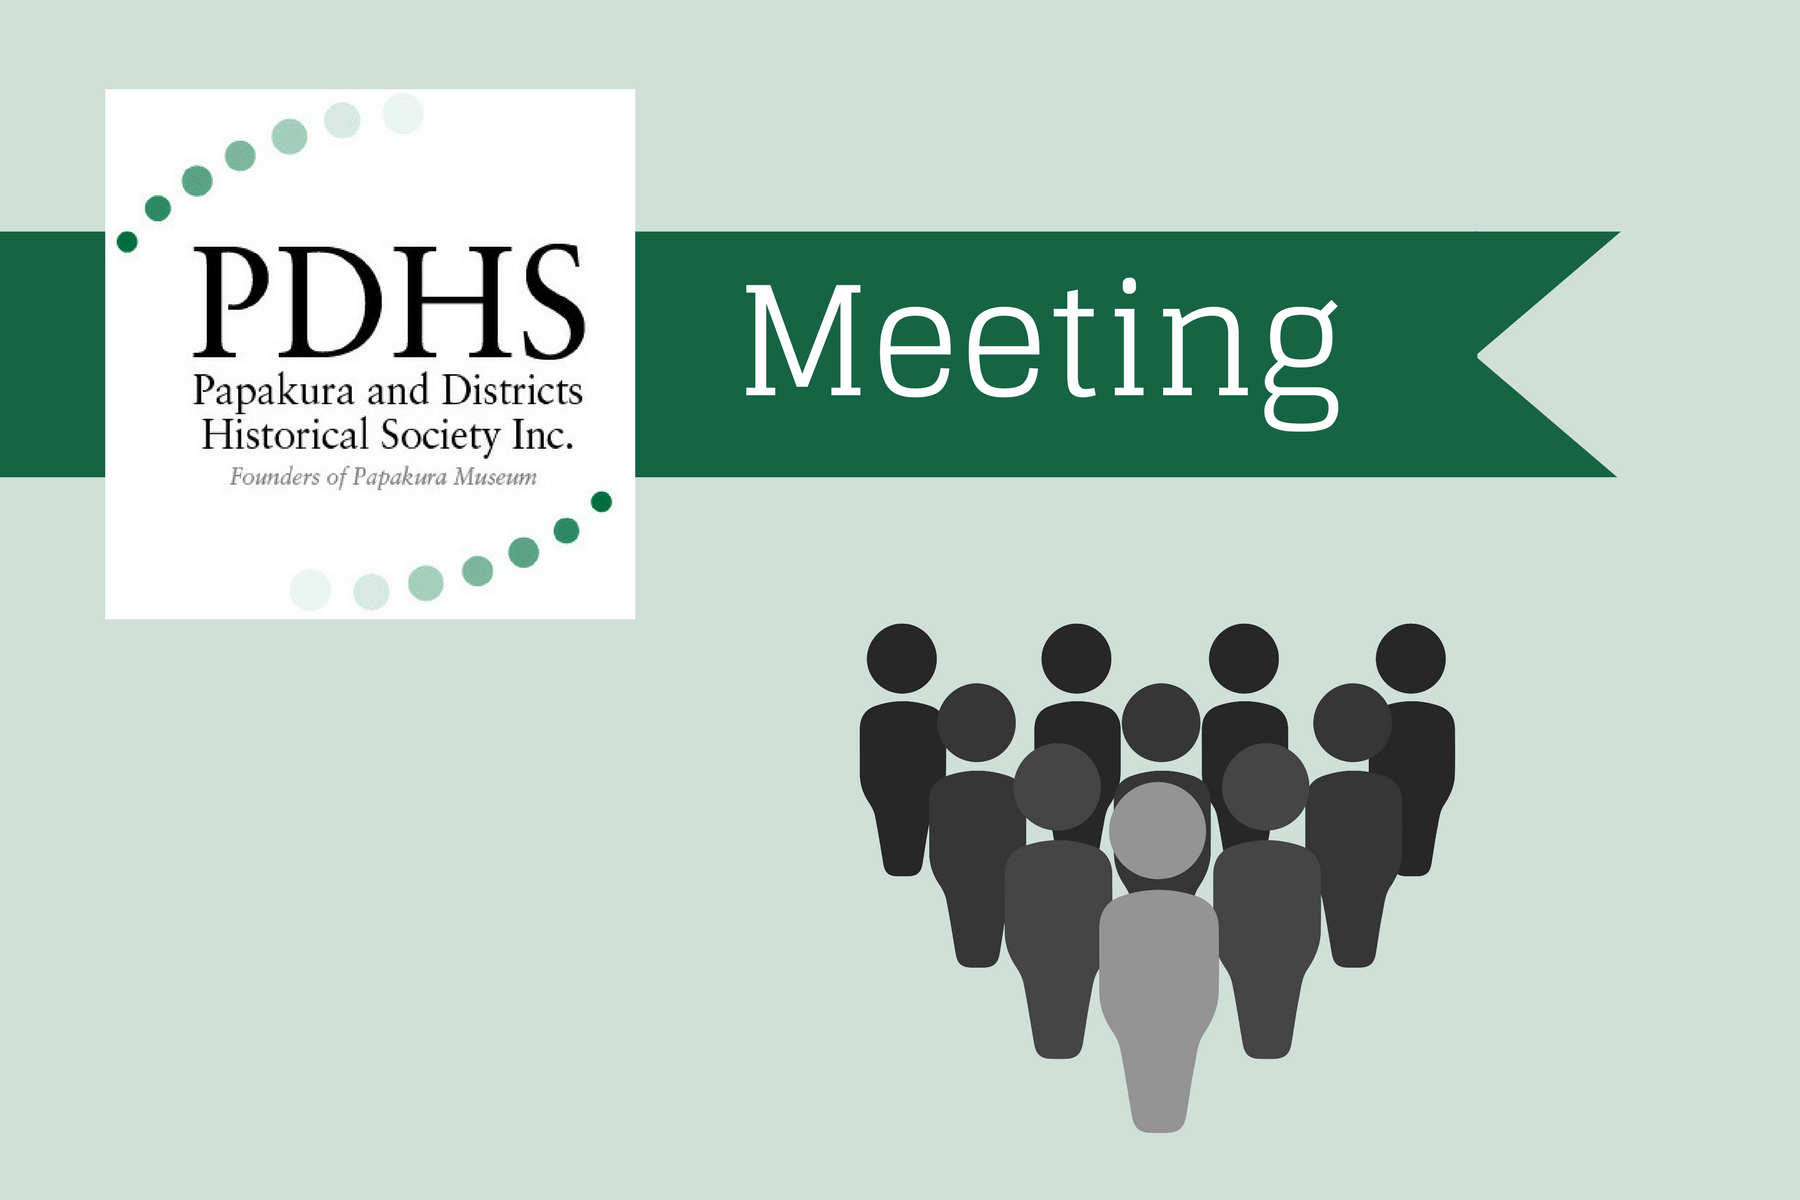 image for PDHS Meeting